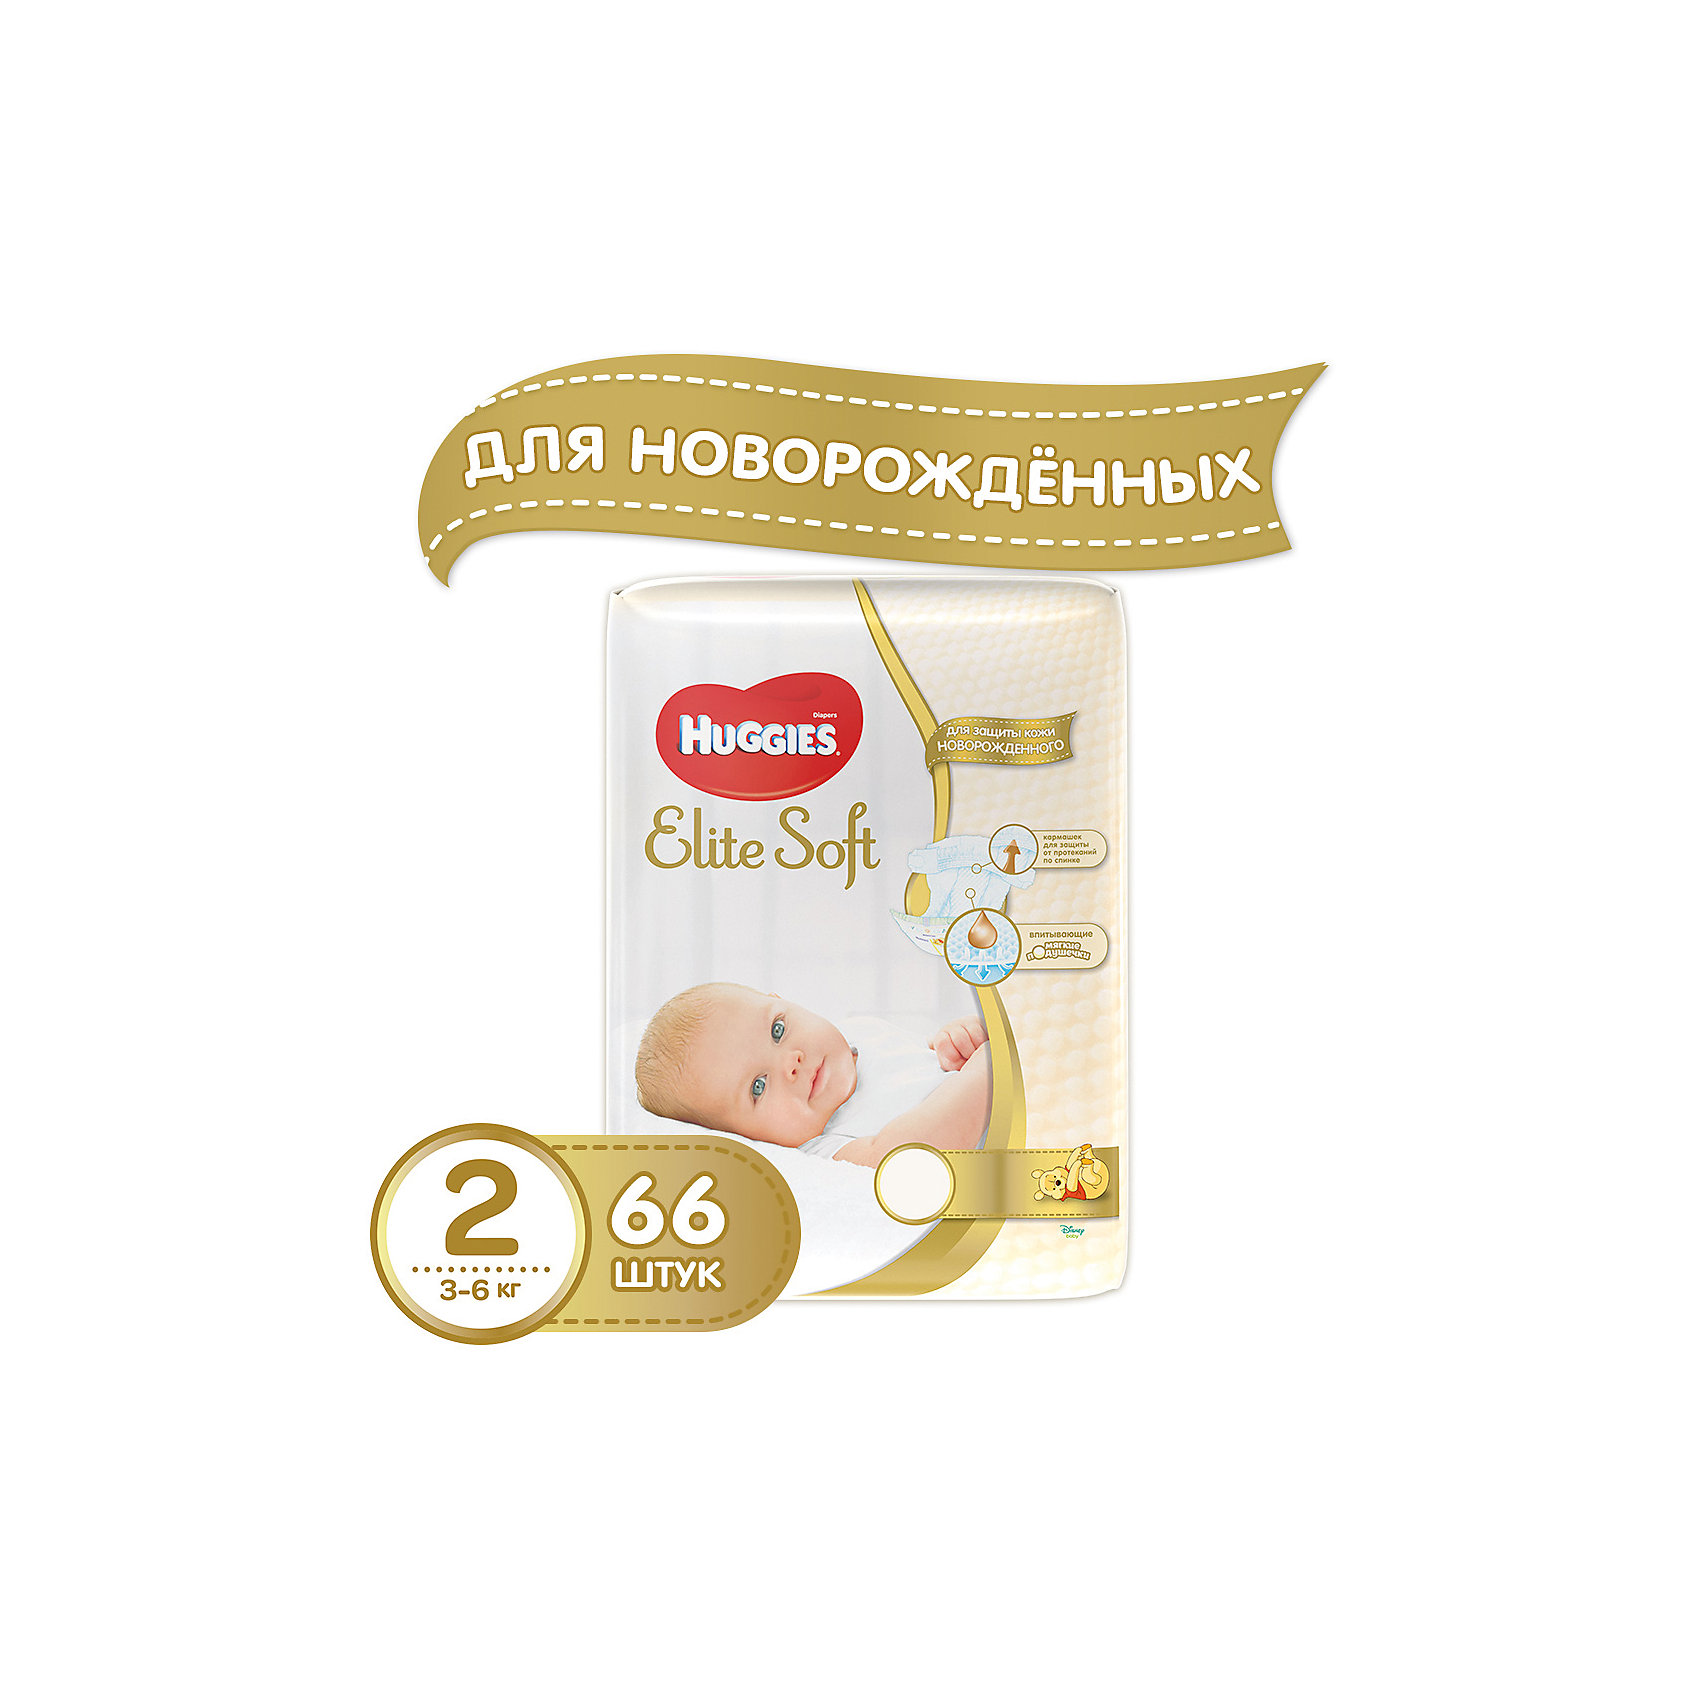 HUGGIES Подгузники Elite Soft (2) 4-7кг, 66 шт., Huggies greenty подгузники greenty 5 13 кг 32 шт